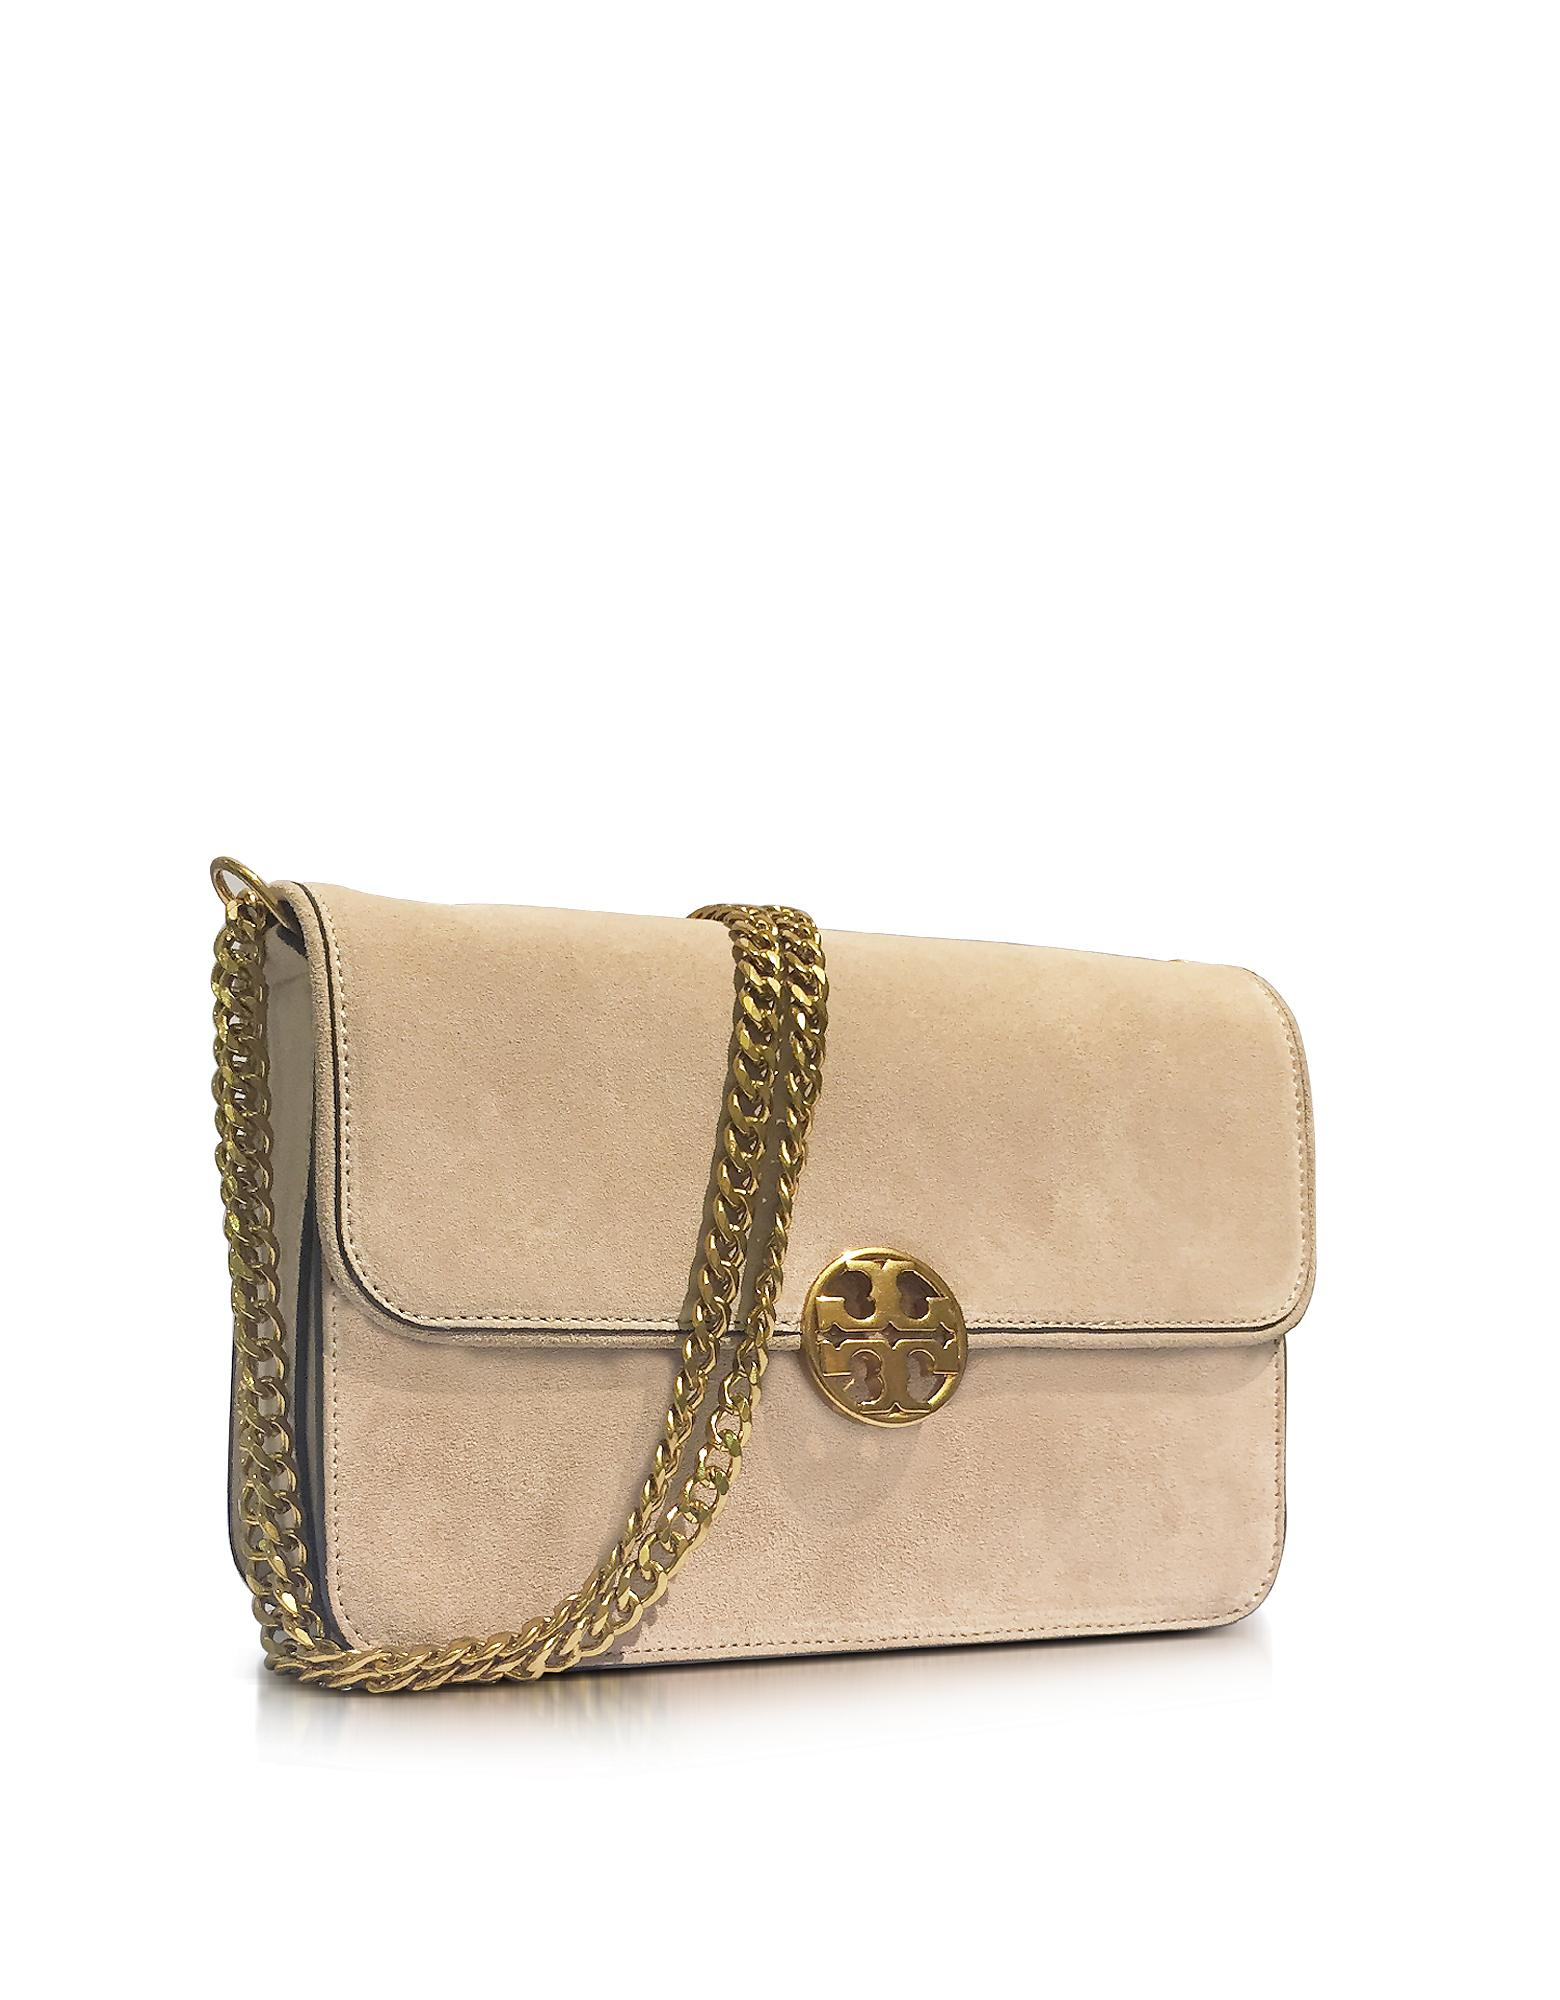 eec3a5f0b23aa Lyst - Tory Burch Chelsea Stucco Suede Shoulder Bag in Natural